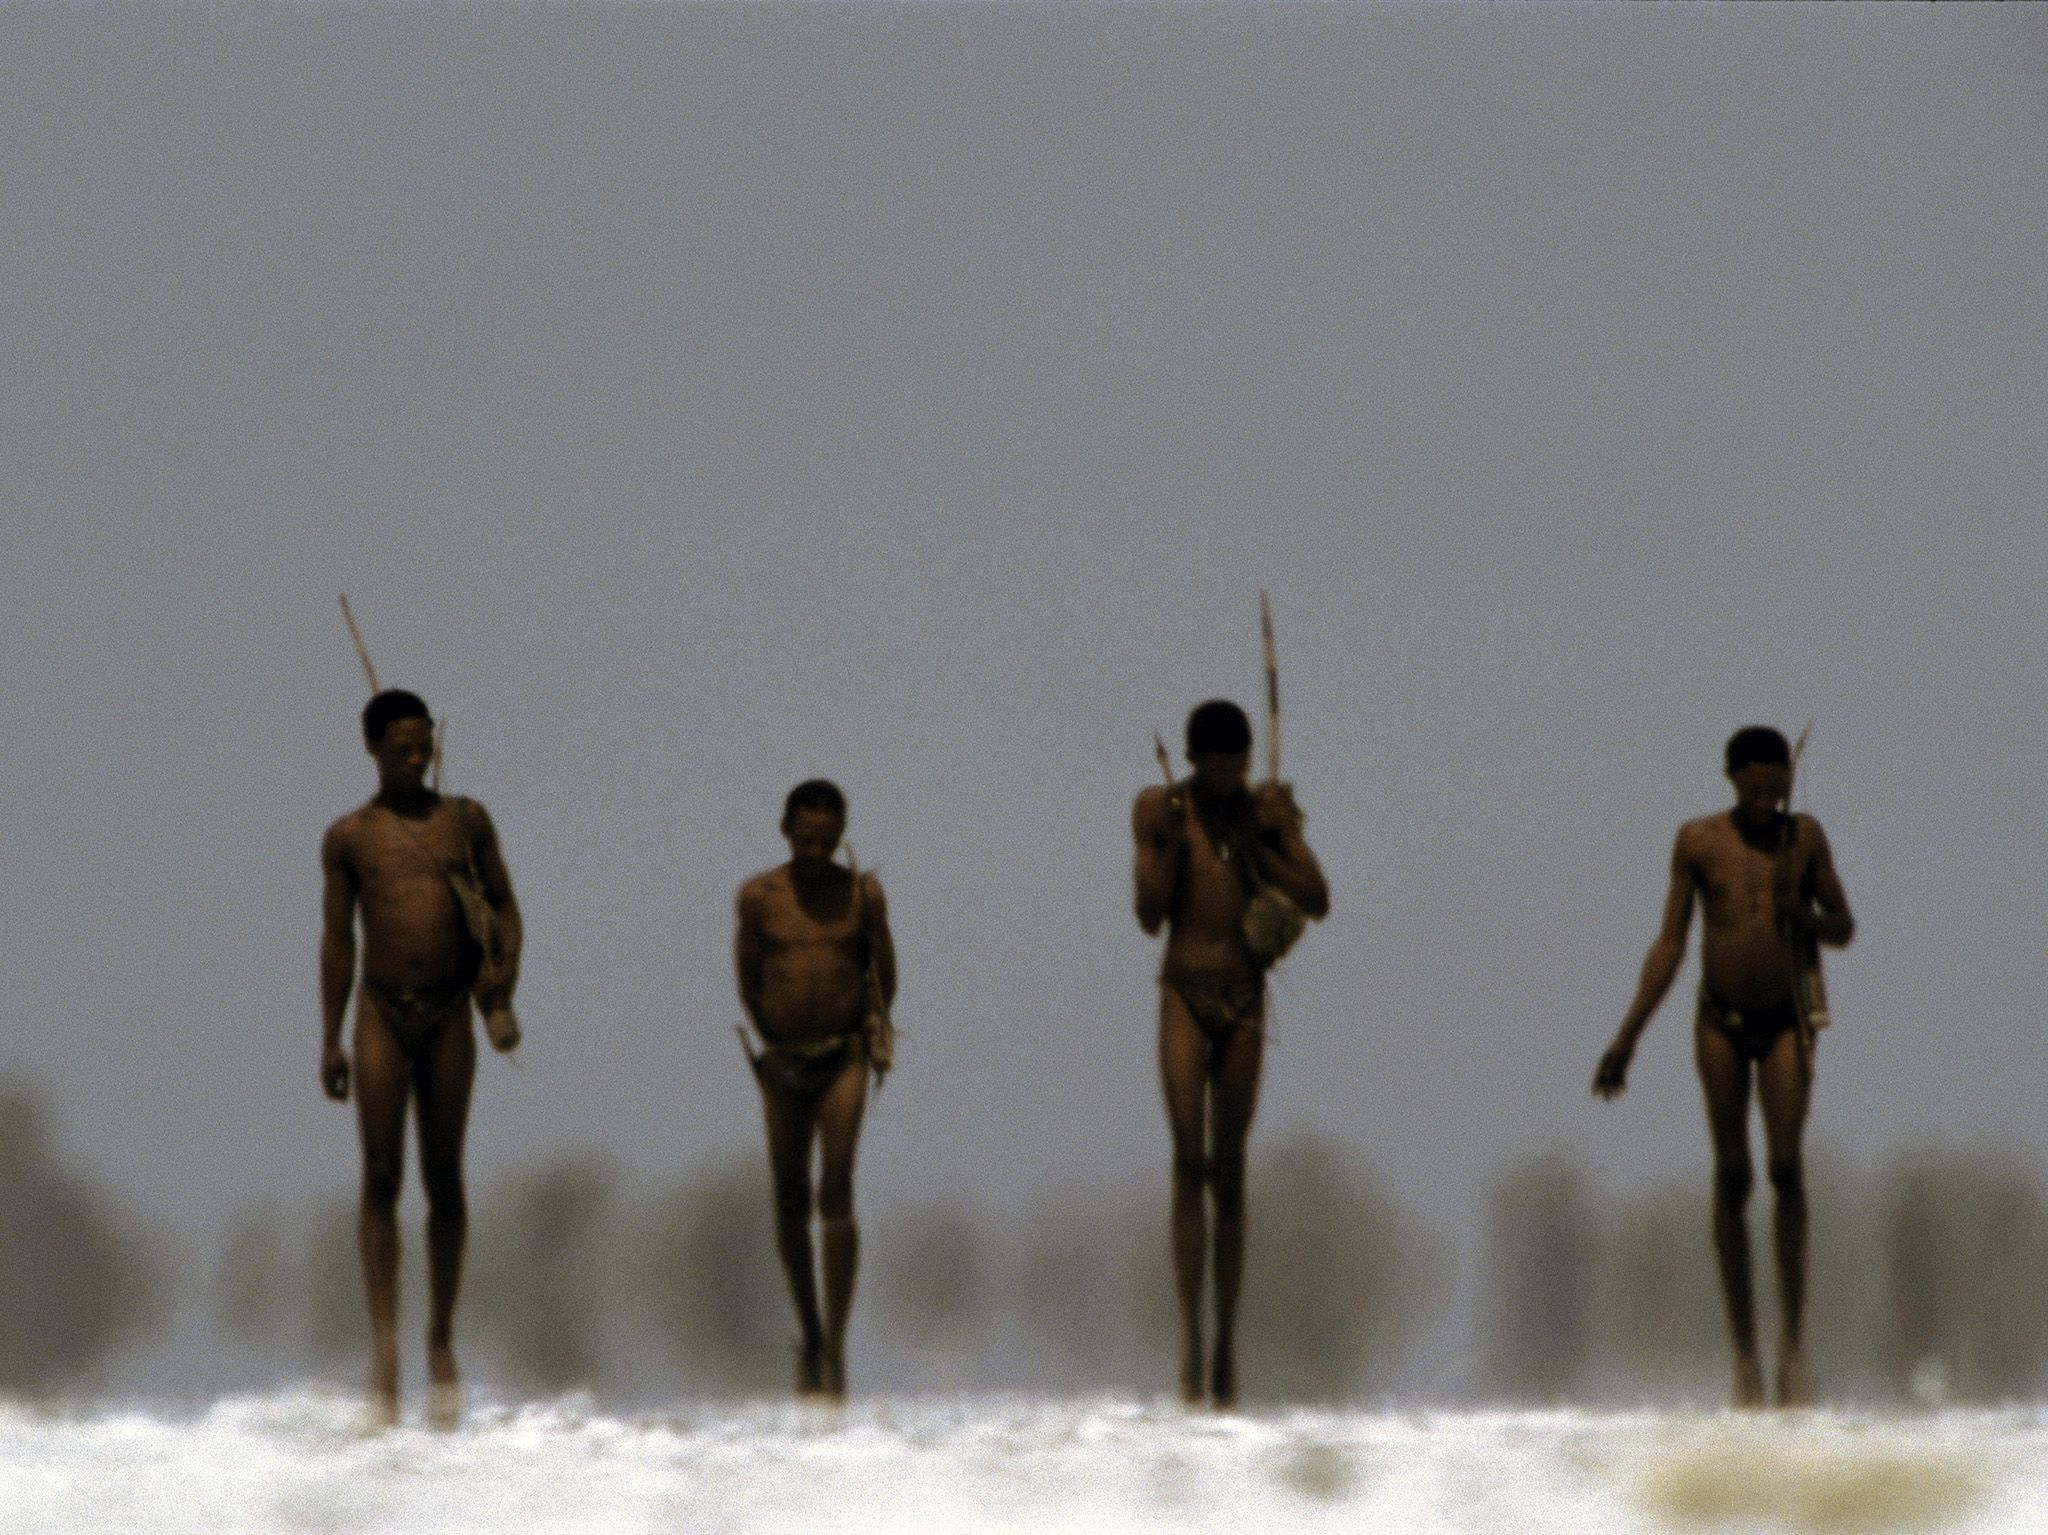 Bushmen armed with bows and arrows walk across a salt pan in Nyae Nyae Conservancy, Namibia.... [Photo of the day - فوریه 2017]